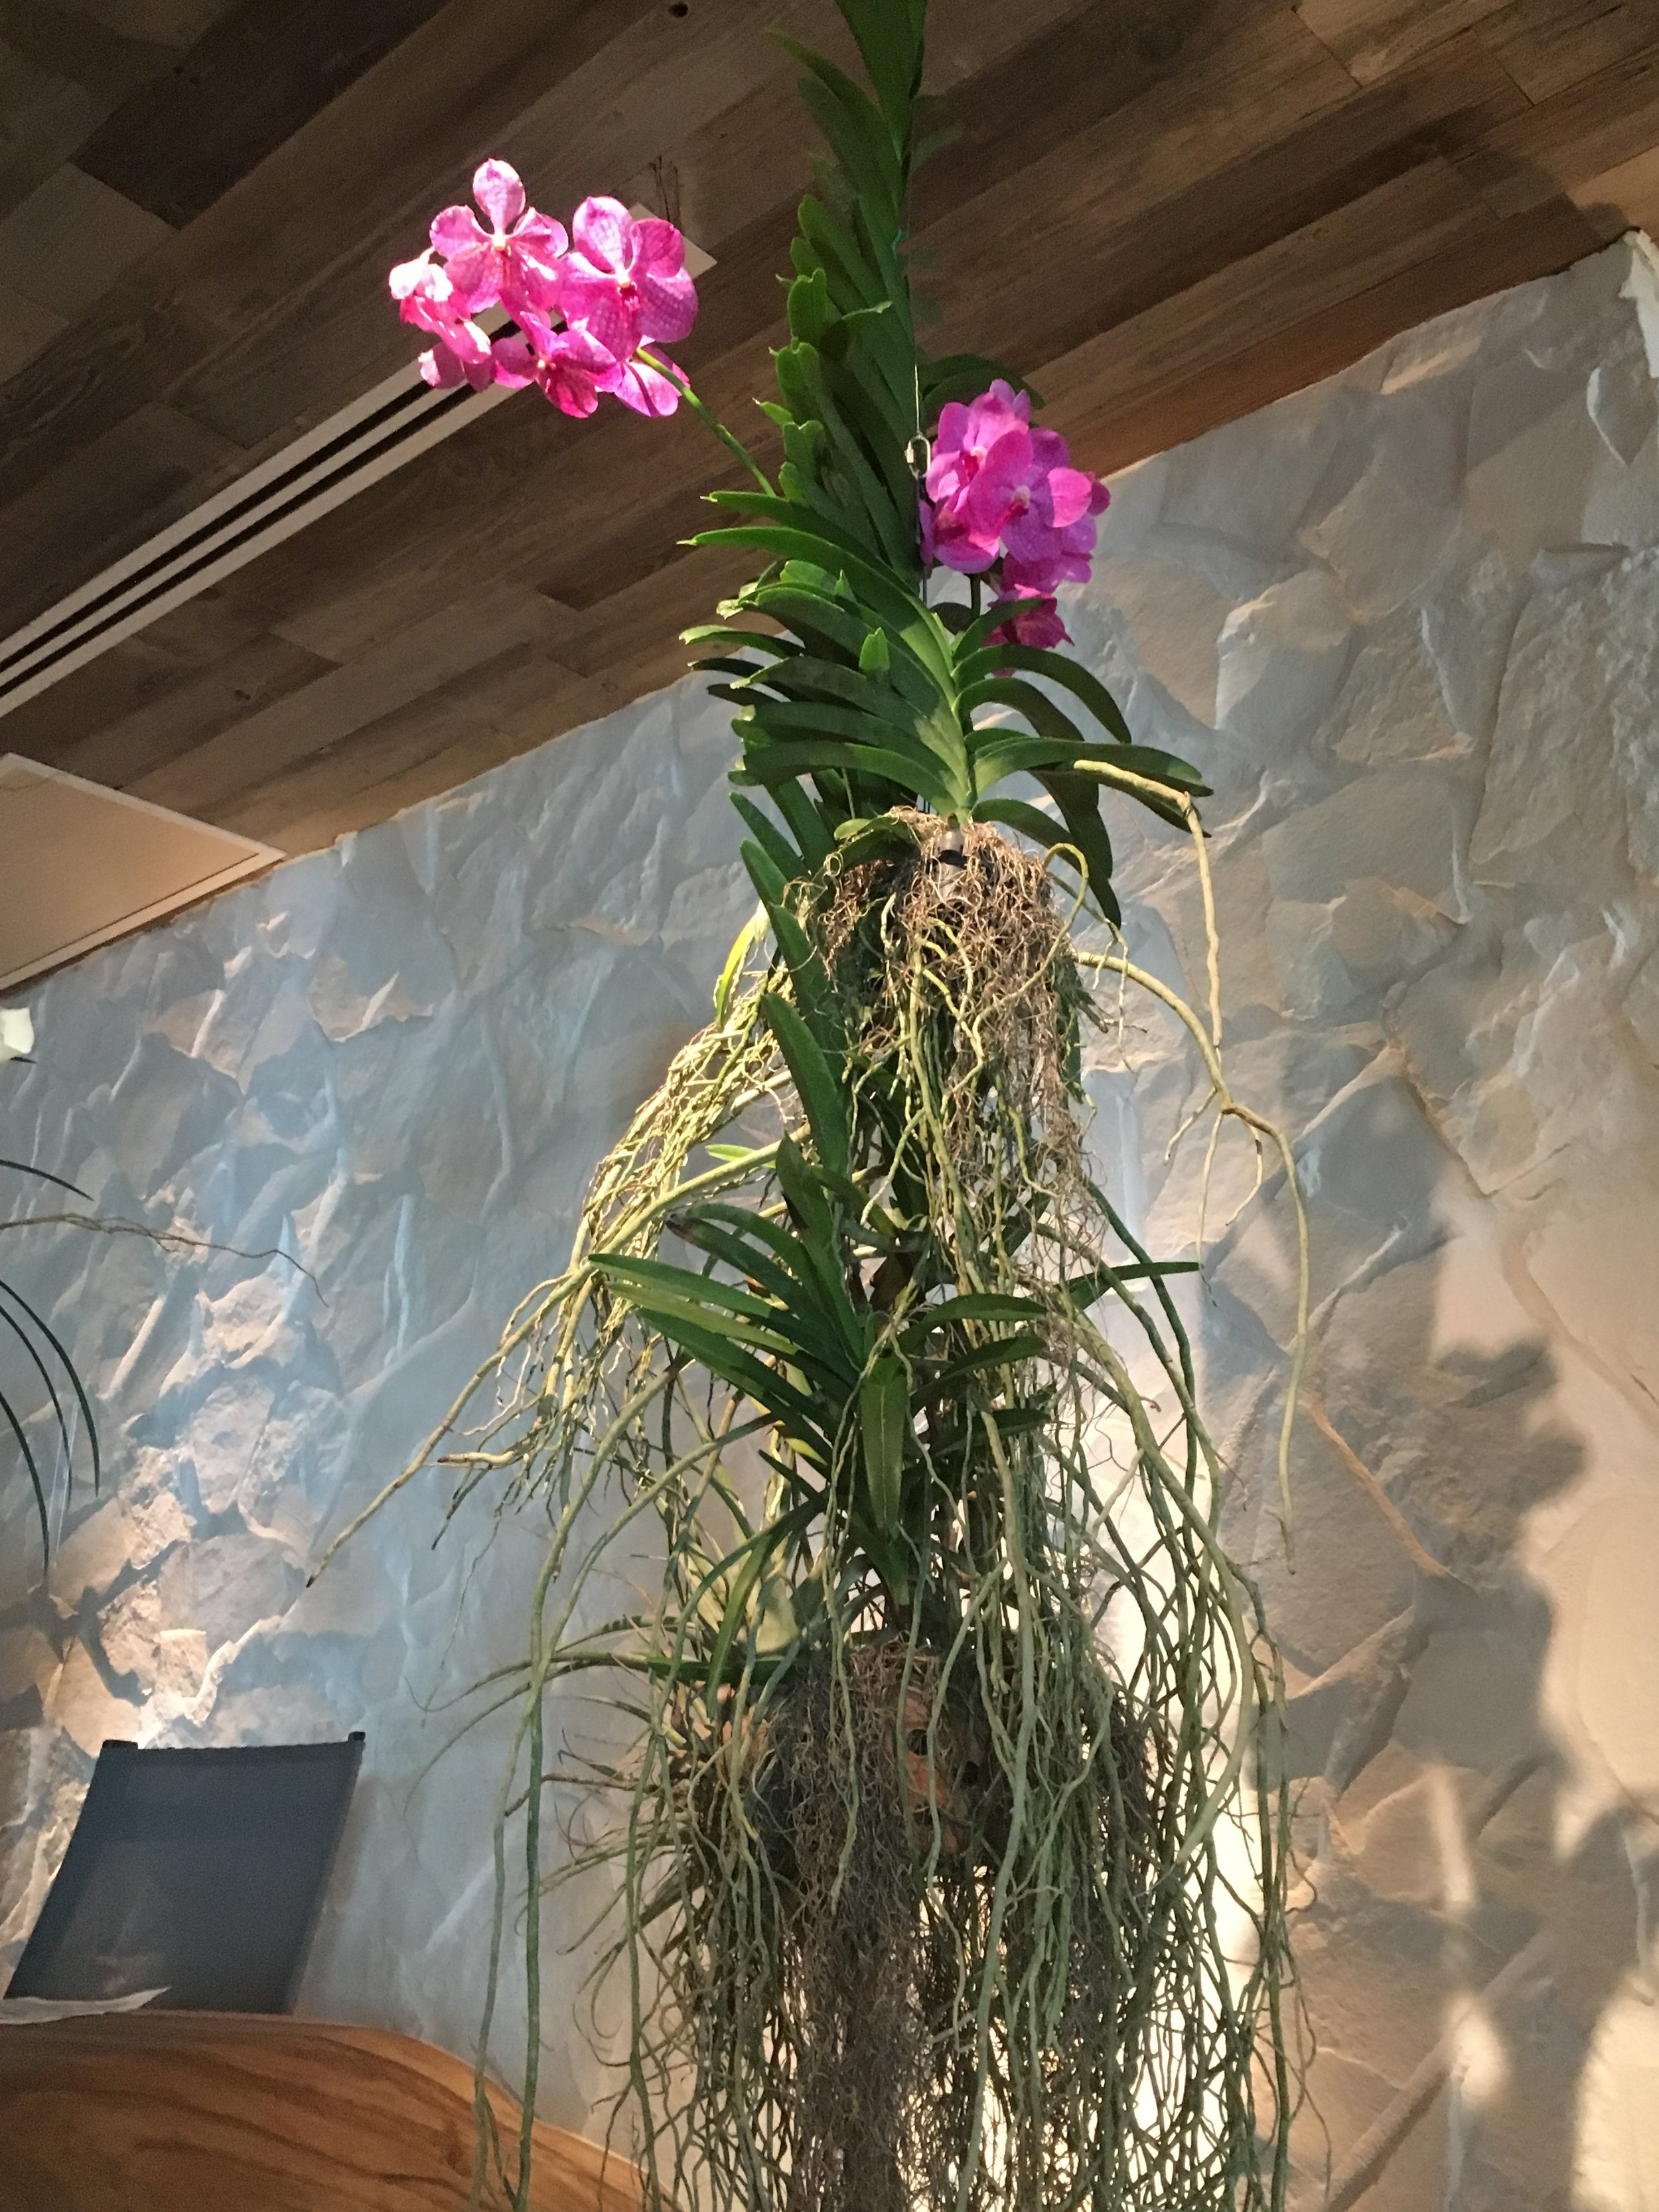 Flowers and green plants throughout the Lobby at 1 Hotel South Beach